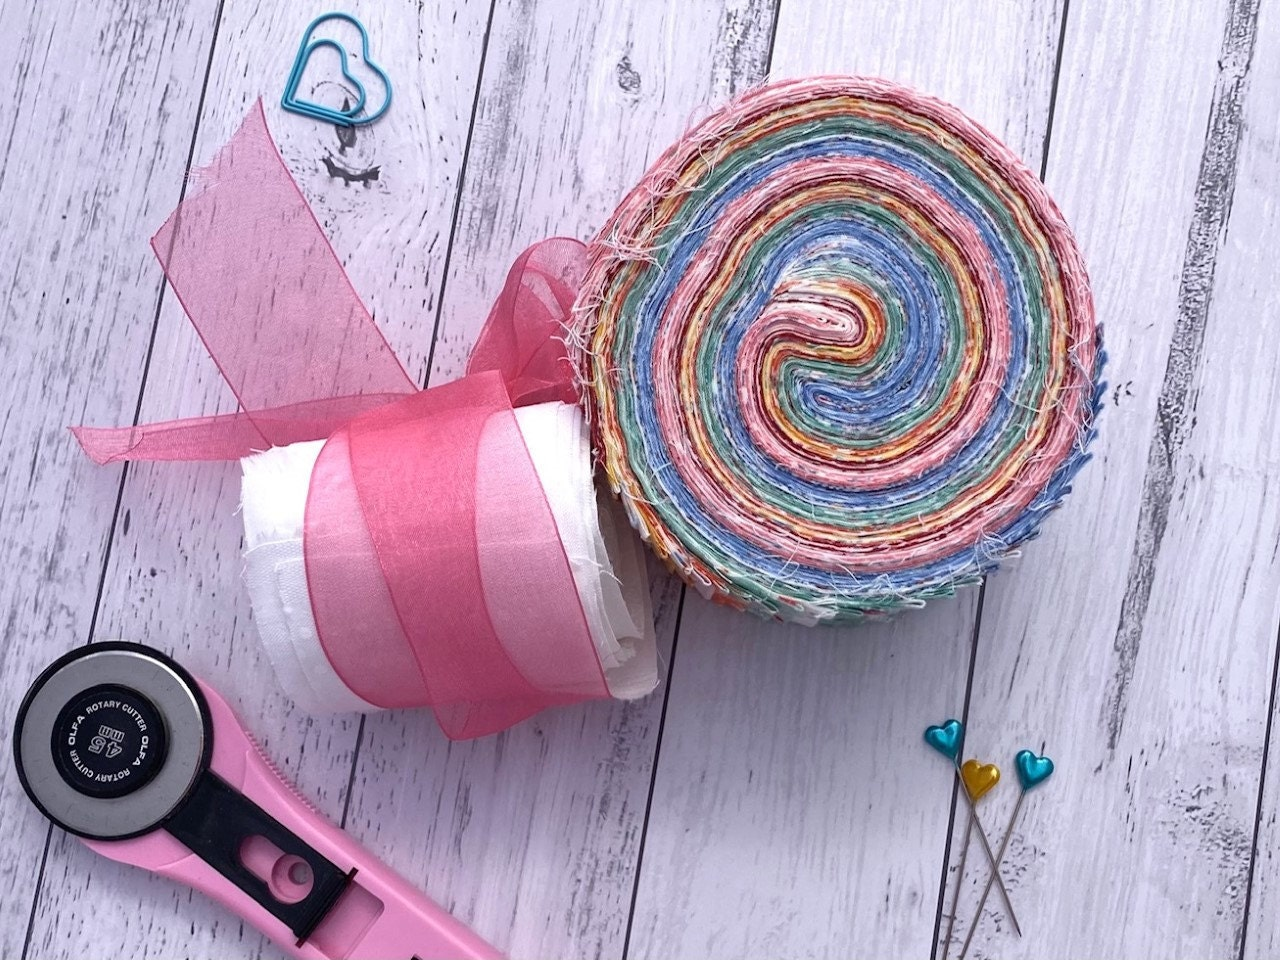 Rotary Cutter and Pretty Jelly Rolls ready to be washed and quilted